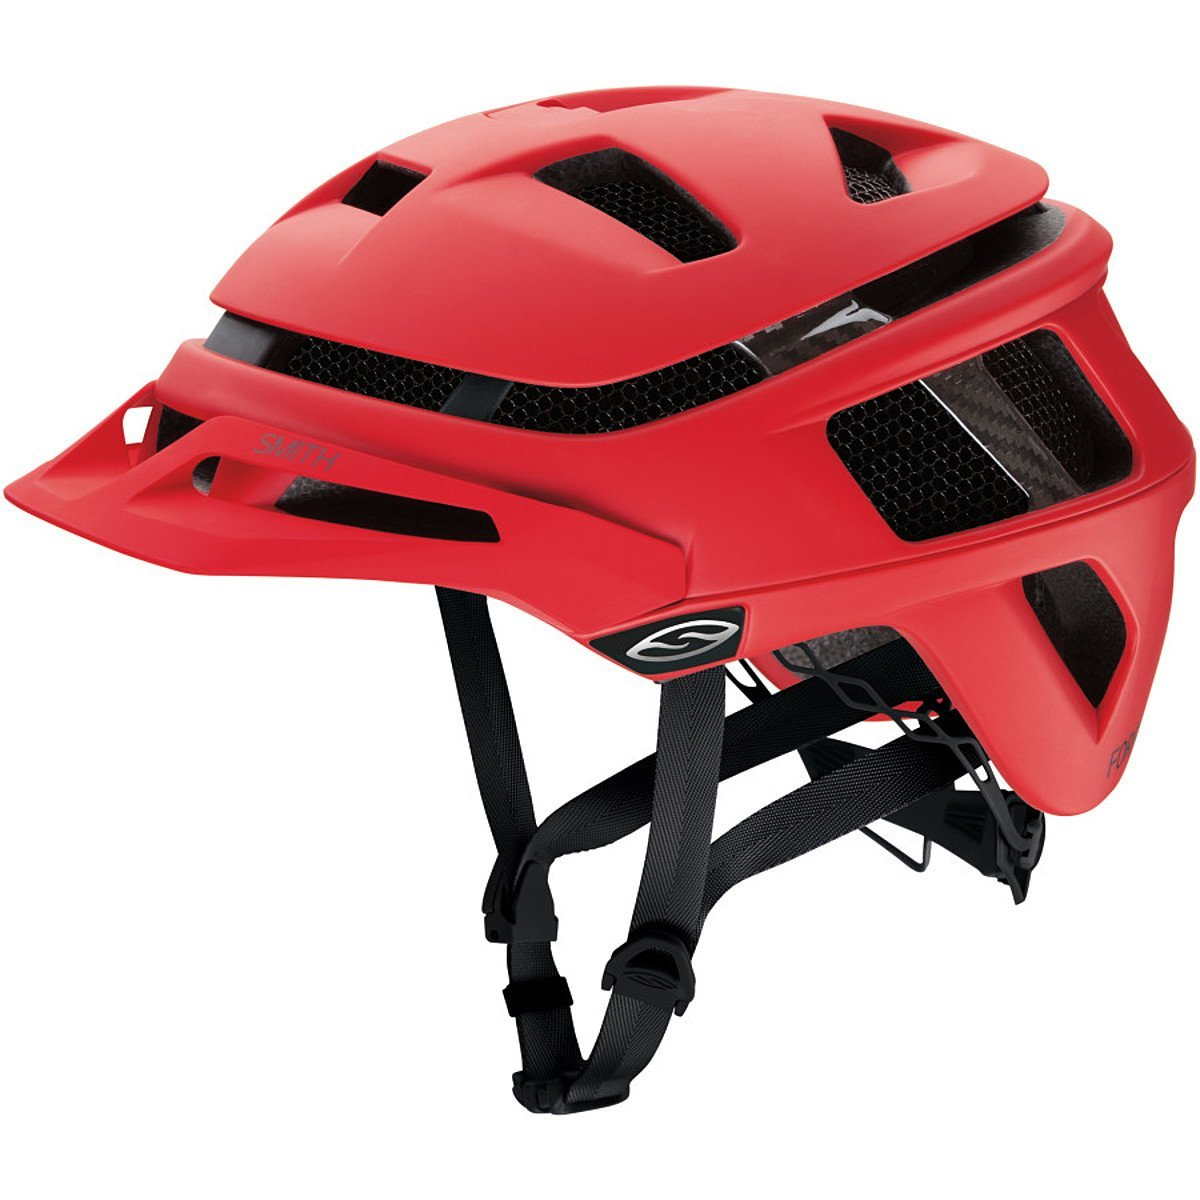 Red Smith Optics Bicycle Helmets